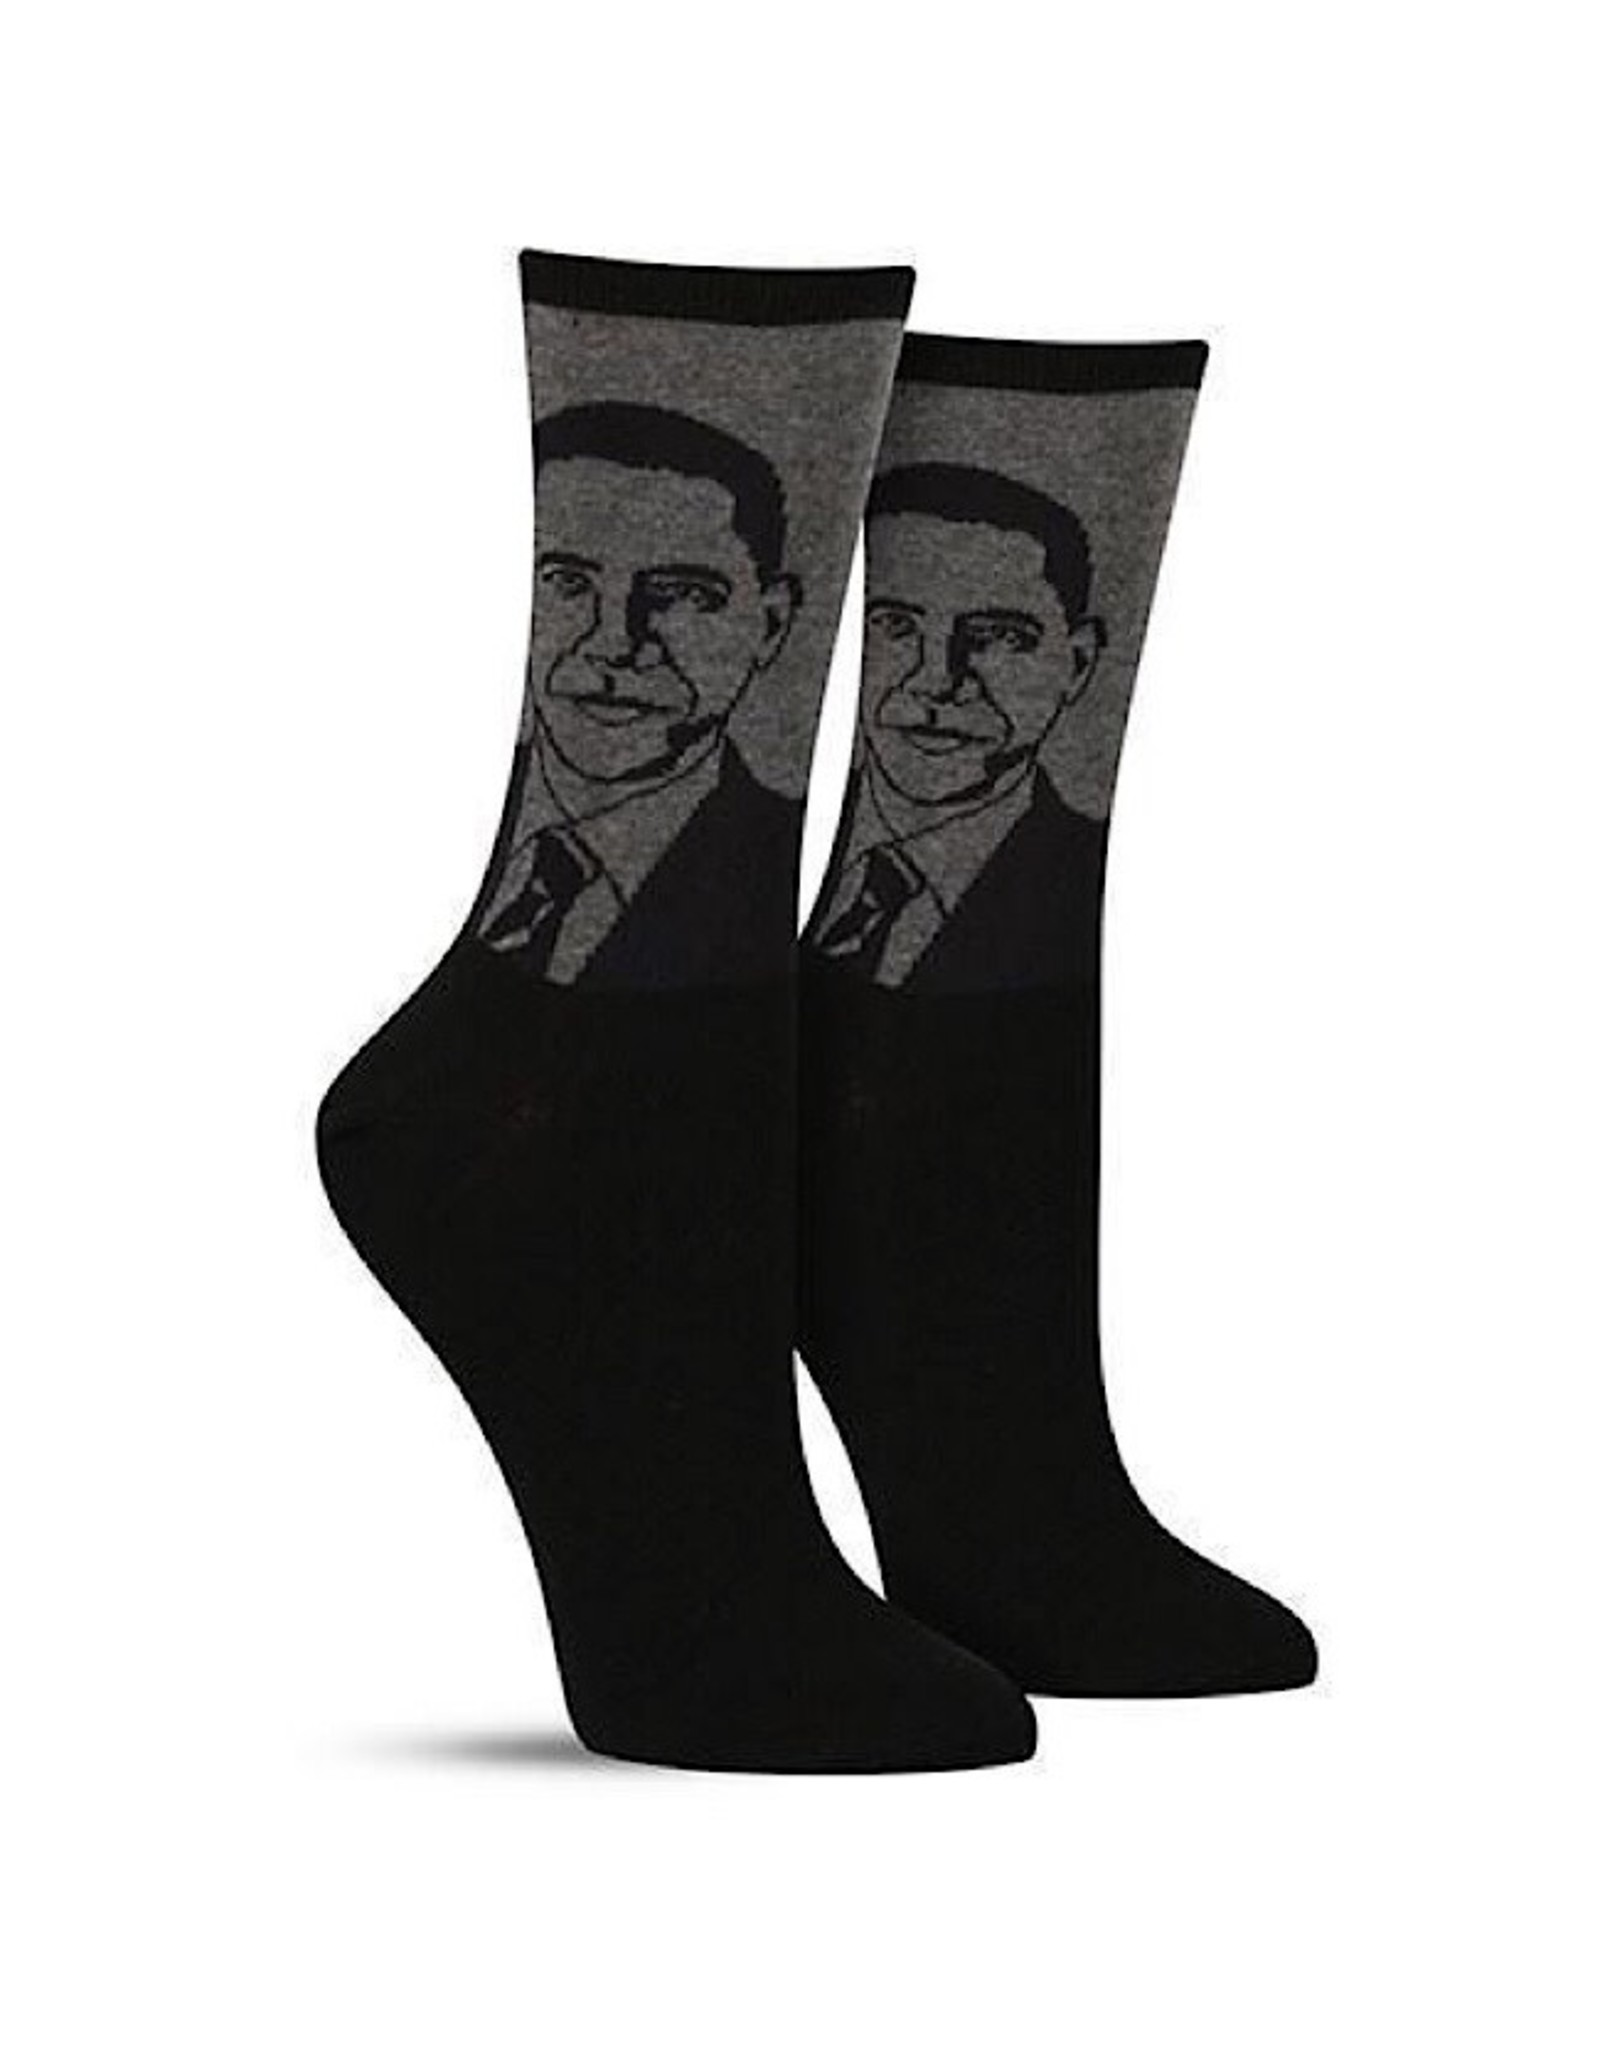 Socks (Womens) - Obama